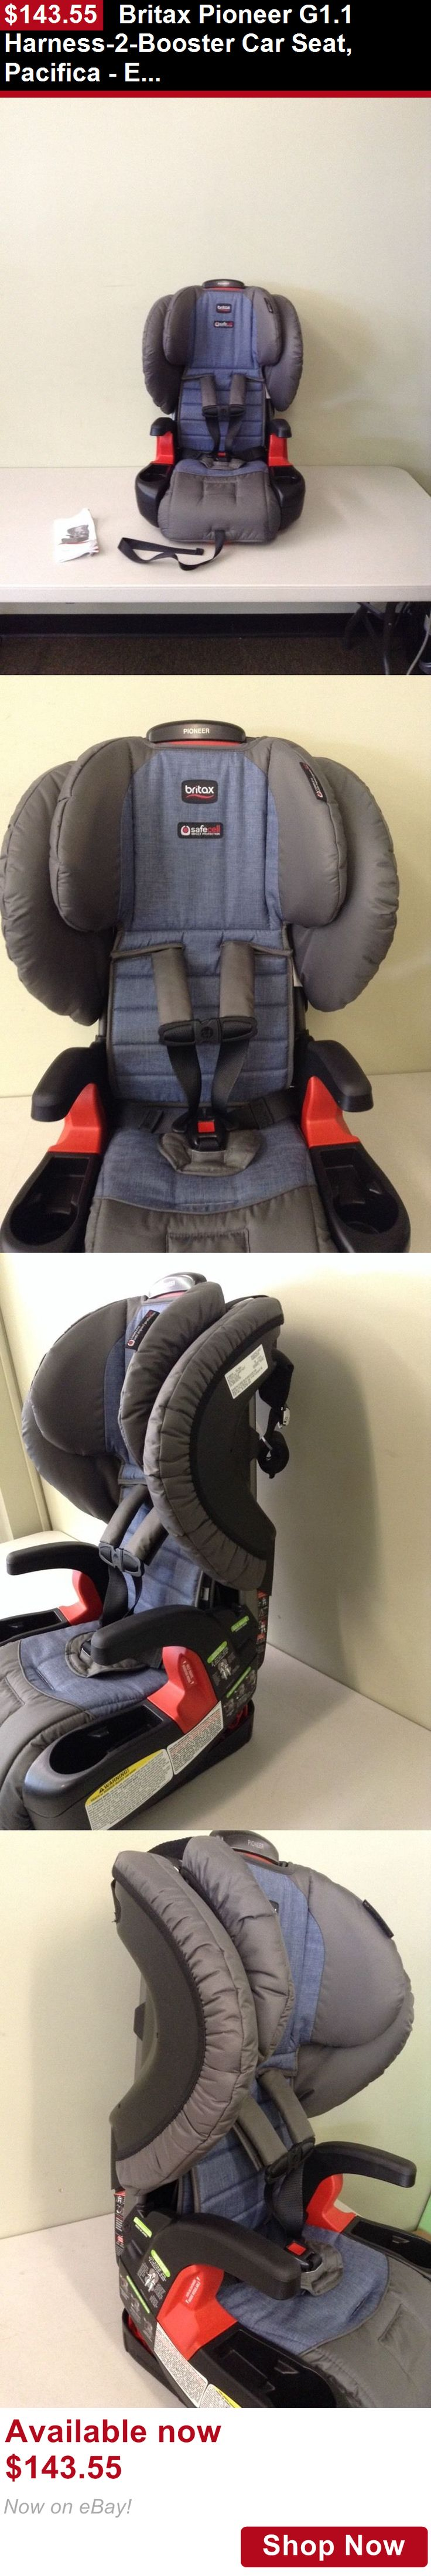 Booster Seats: Britax Pioneer G1.1 Harness-2-Booster Car Seat, Pacifica - E9lz66v- 2016 Display BUY IT NOW ONLY: $143.55